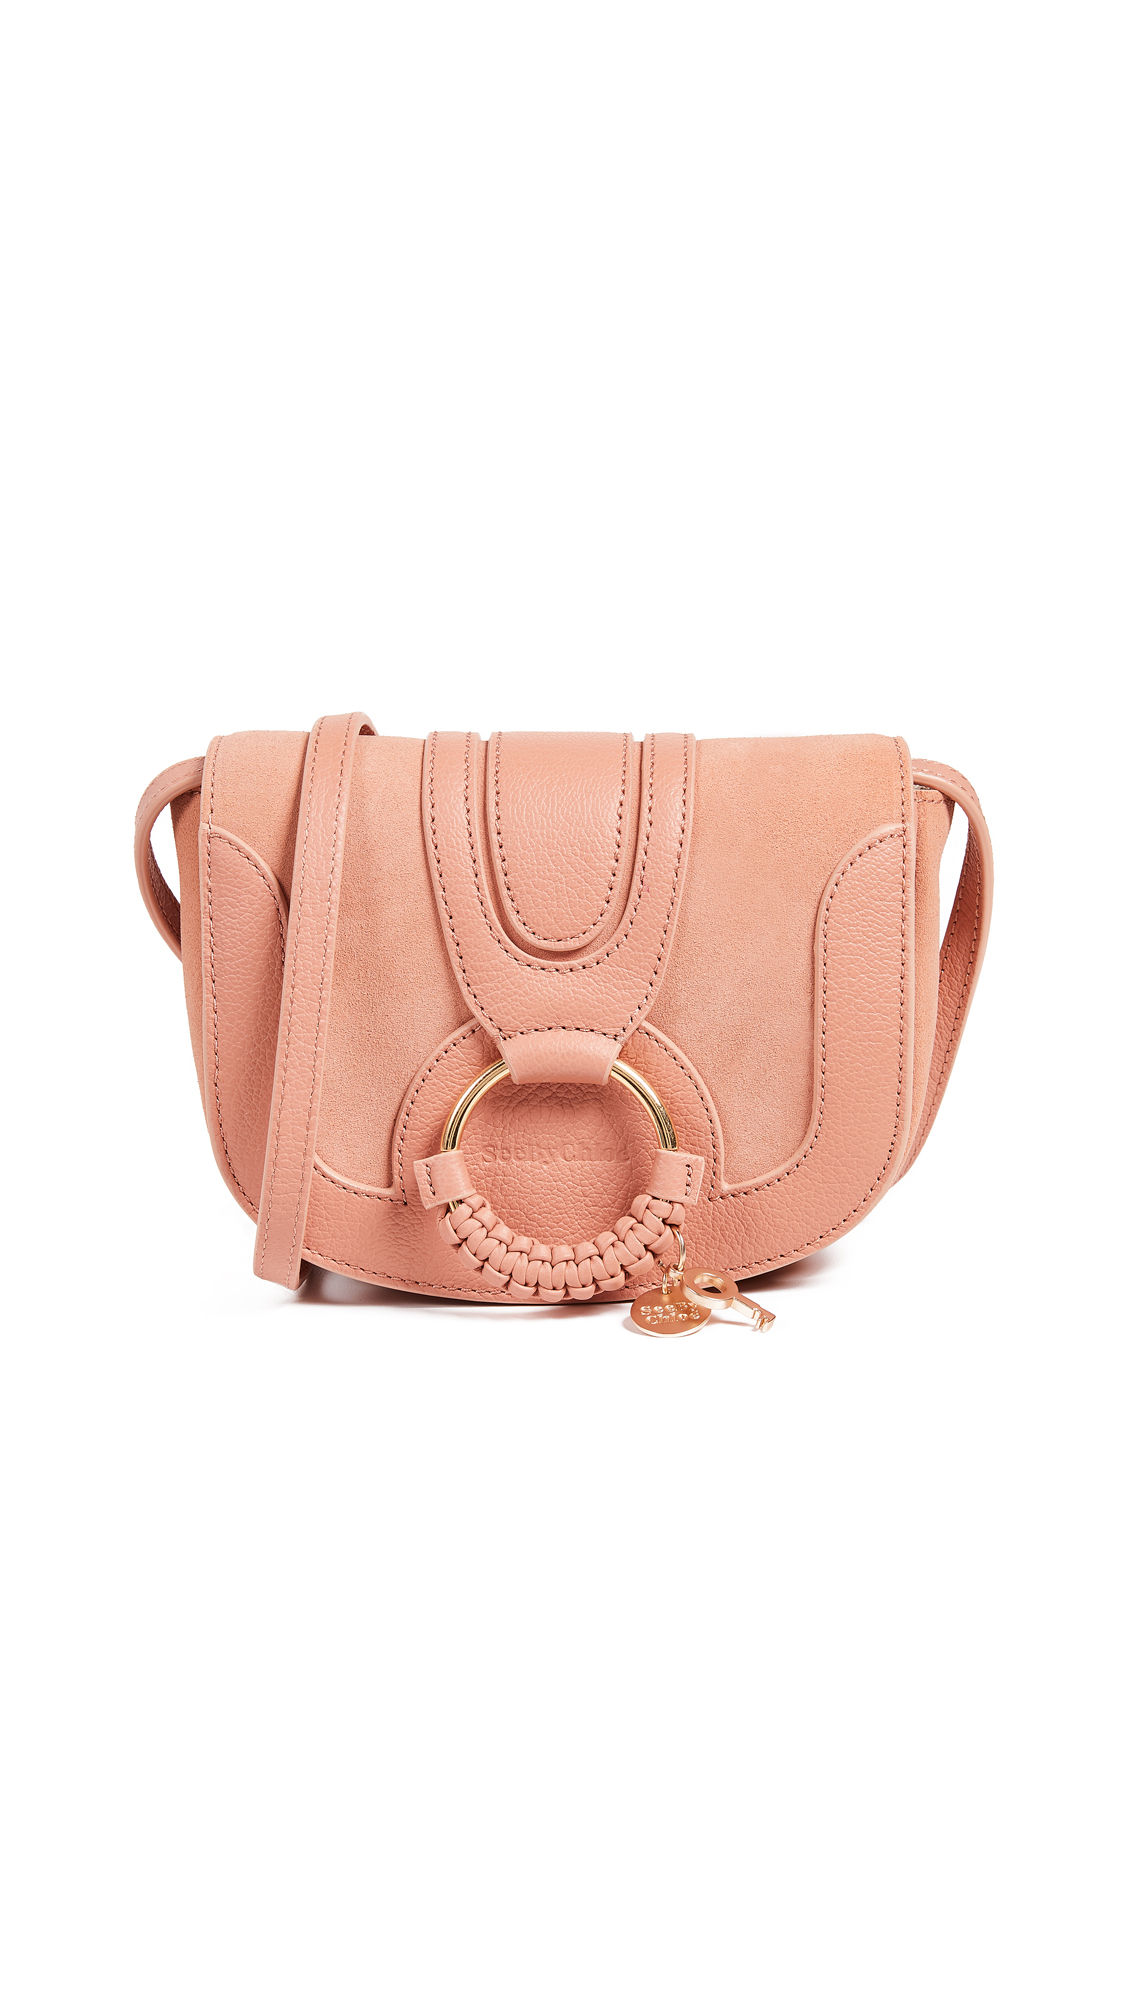 See by Chloe Hana Small Saddle Bag In Canyon Sunset